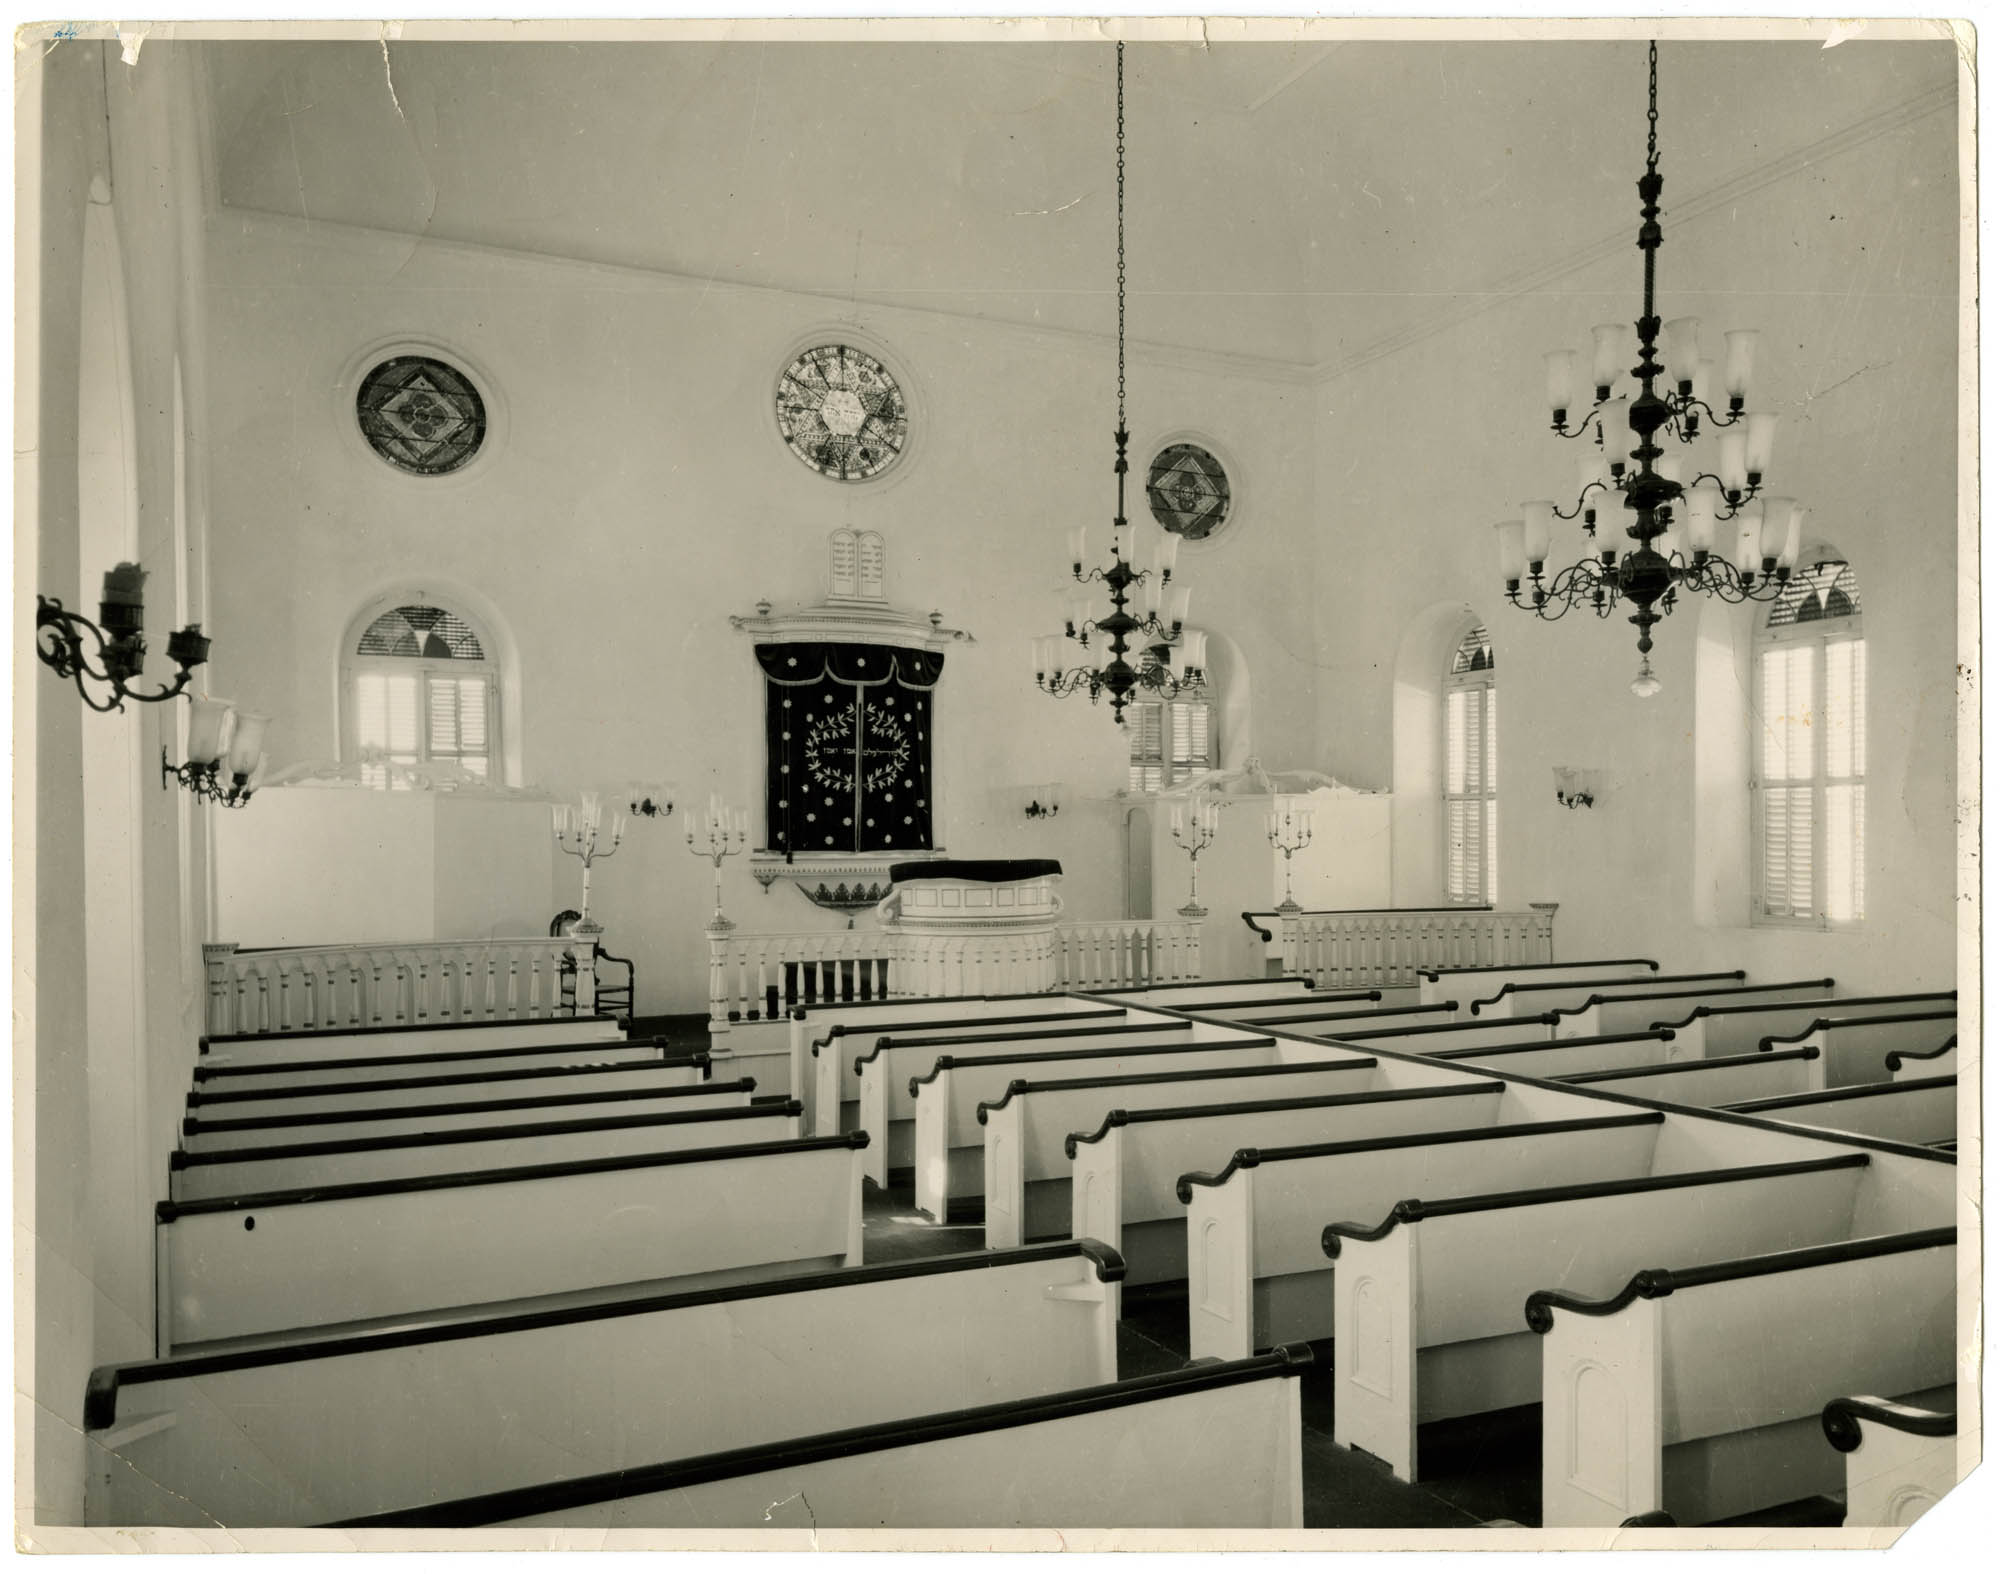 [The interior of the Reform Temple Emanuel in Curaçao, Dutch W. Indies]